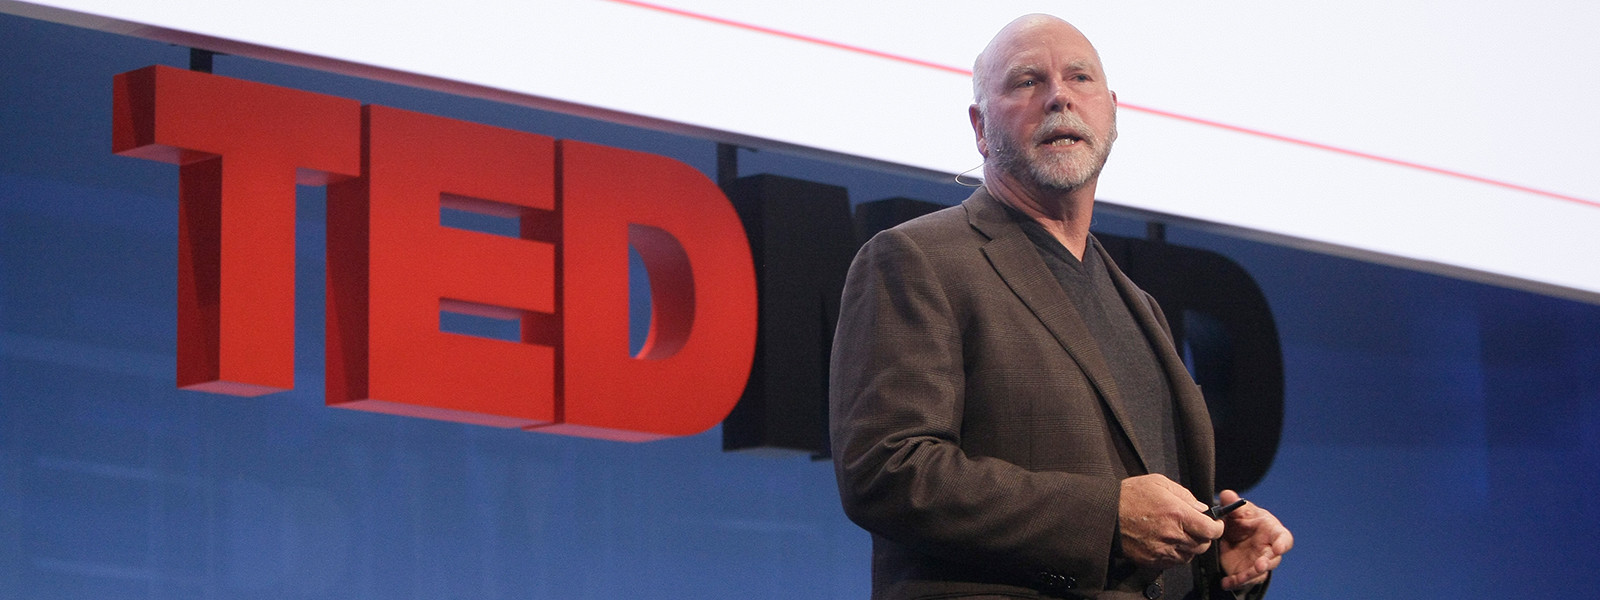 Image result for craig venter ted